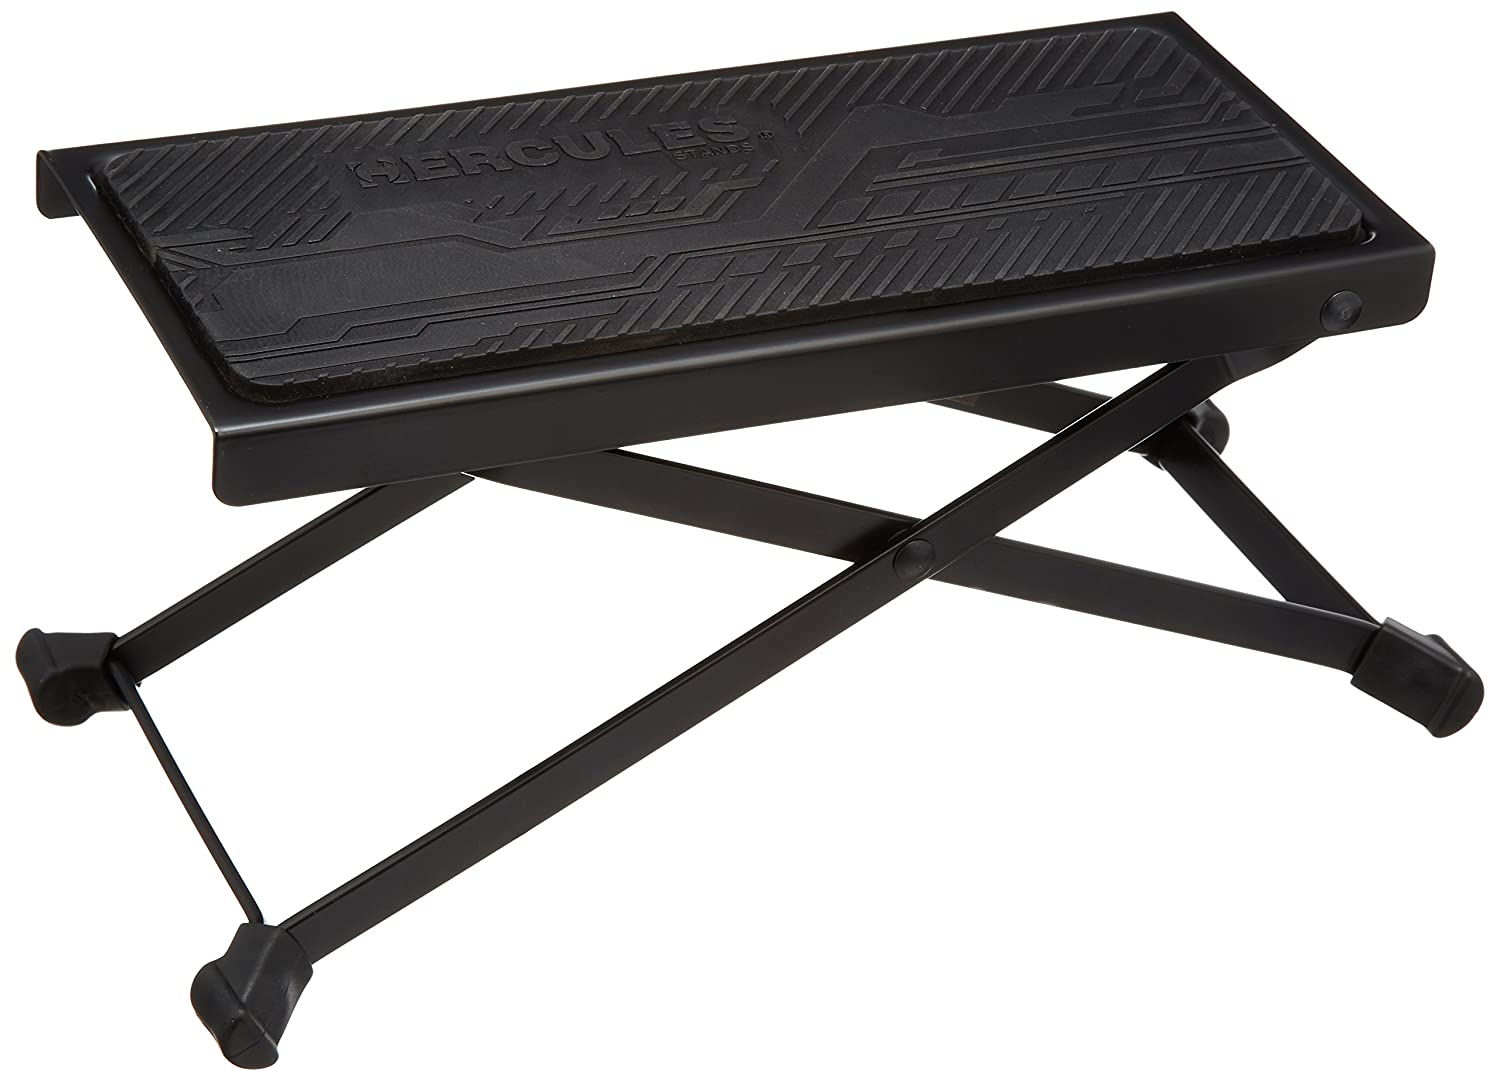 Hercules FS100B Large Foot Rest Plate for Comfortable and Solid Support